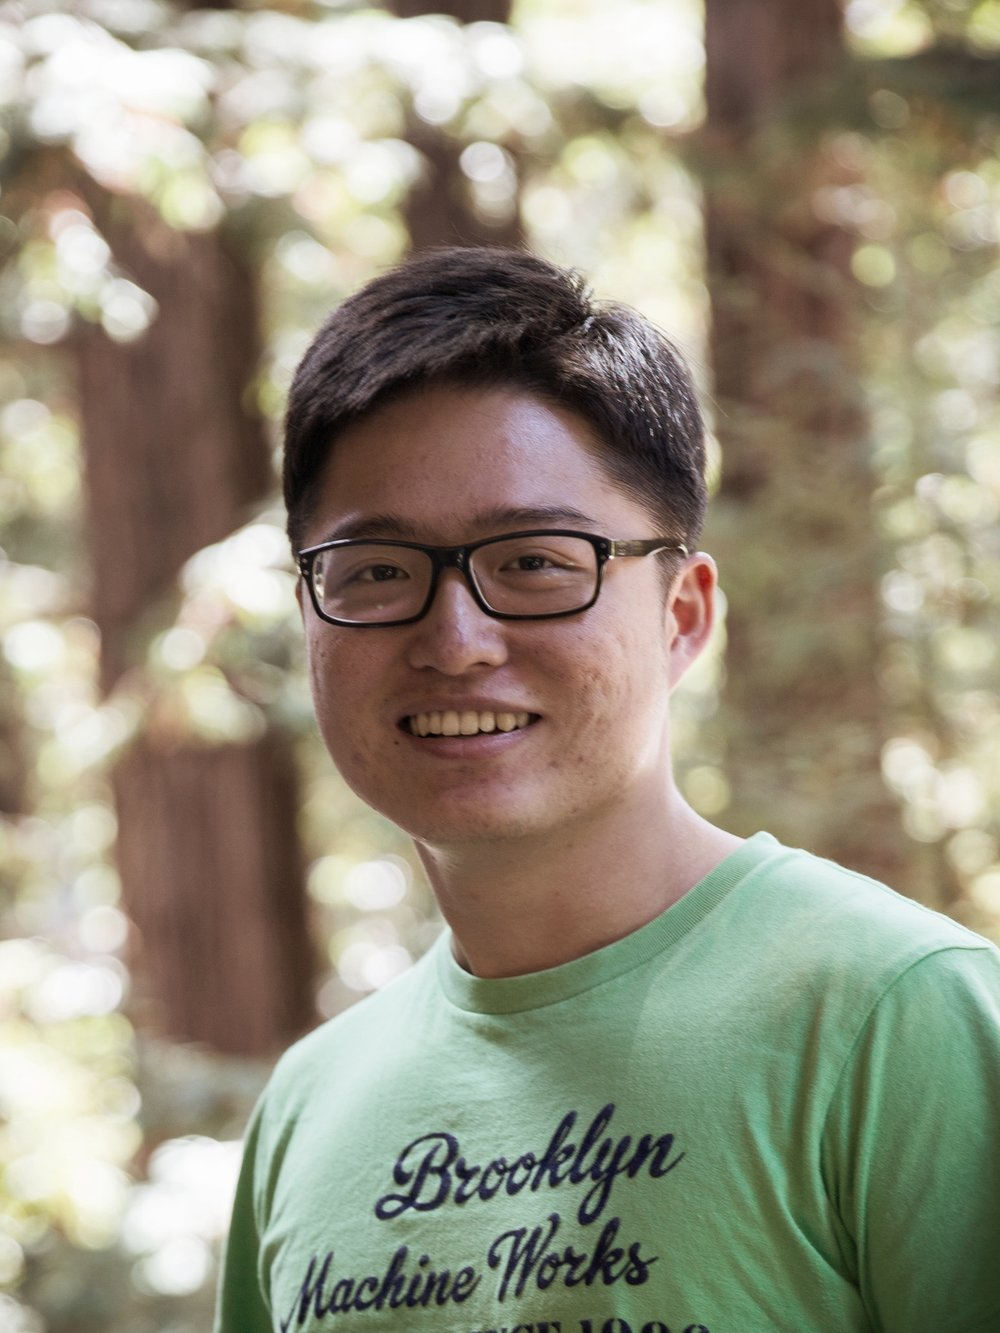 Yixiang (Louis) Li   Yixiang received his B.S. (2012) and M.S. (2015) from Wuhan University in Physics and now pursuing his PhD in EE at UCSC. His research is currently focused on the fabrication and characterization of surface acoustic wave(SAW) devices, microfluidics systems, and its applications. He is presently working on multifunctional SAW device by incorporating phononic crystal into microfluidic systems.